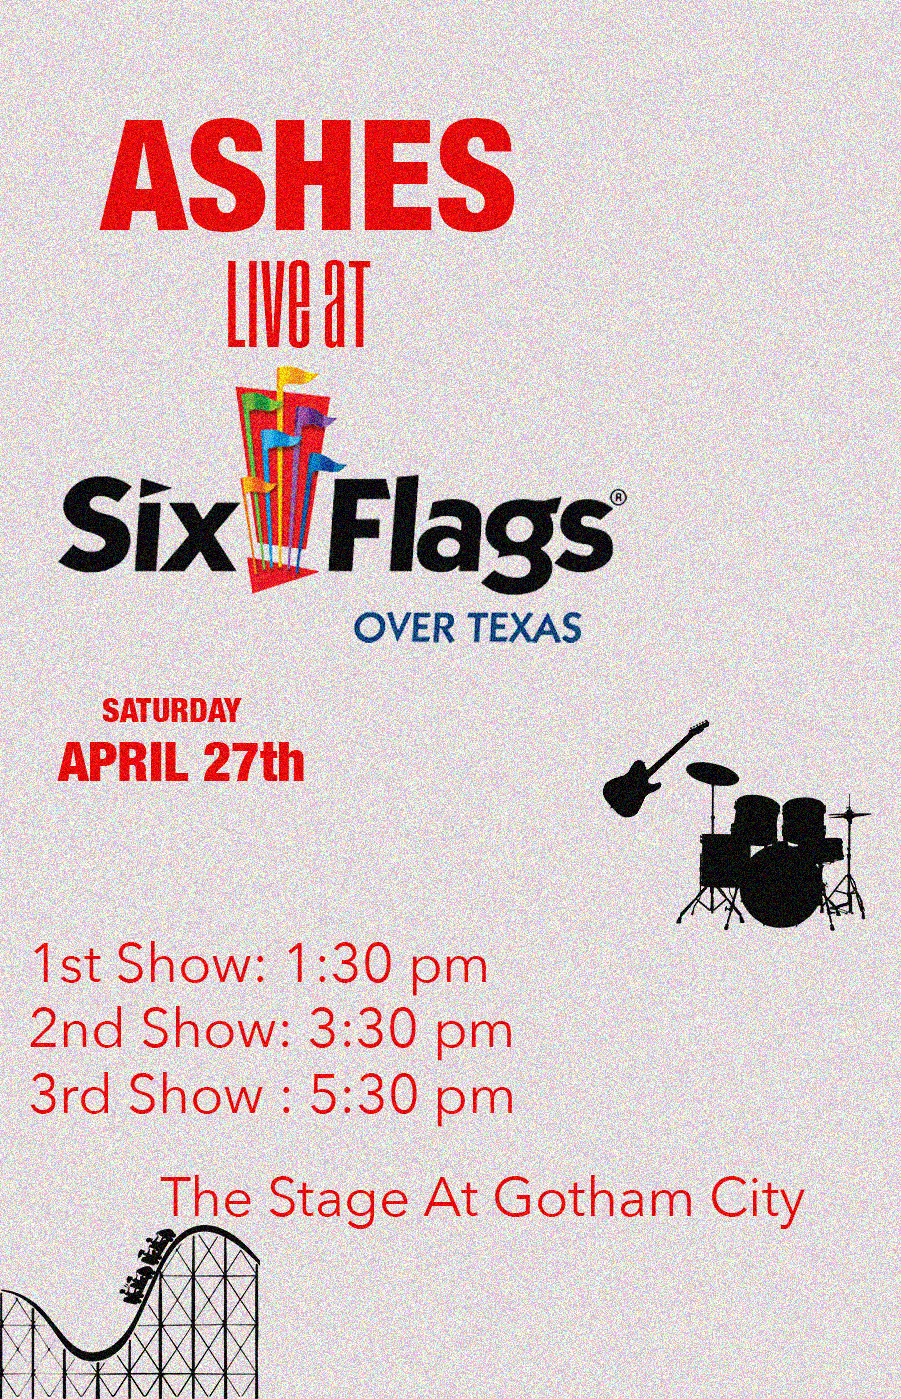 Ashes Live At Six Flags Poster.jpg